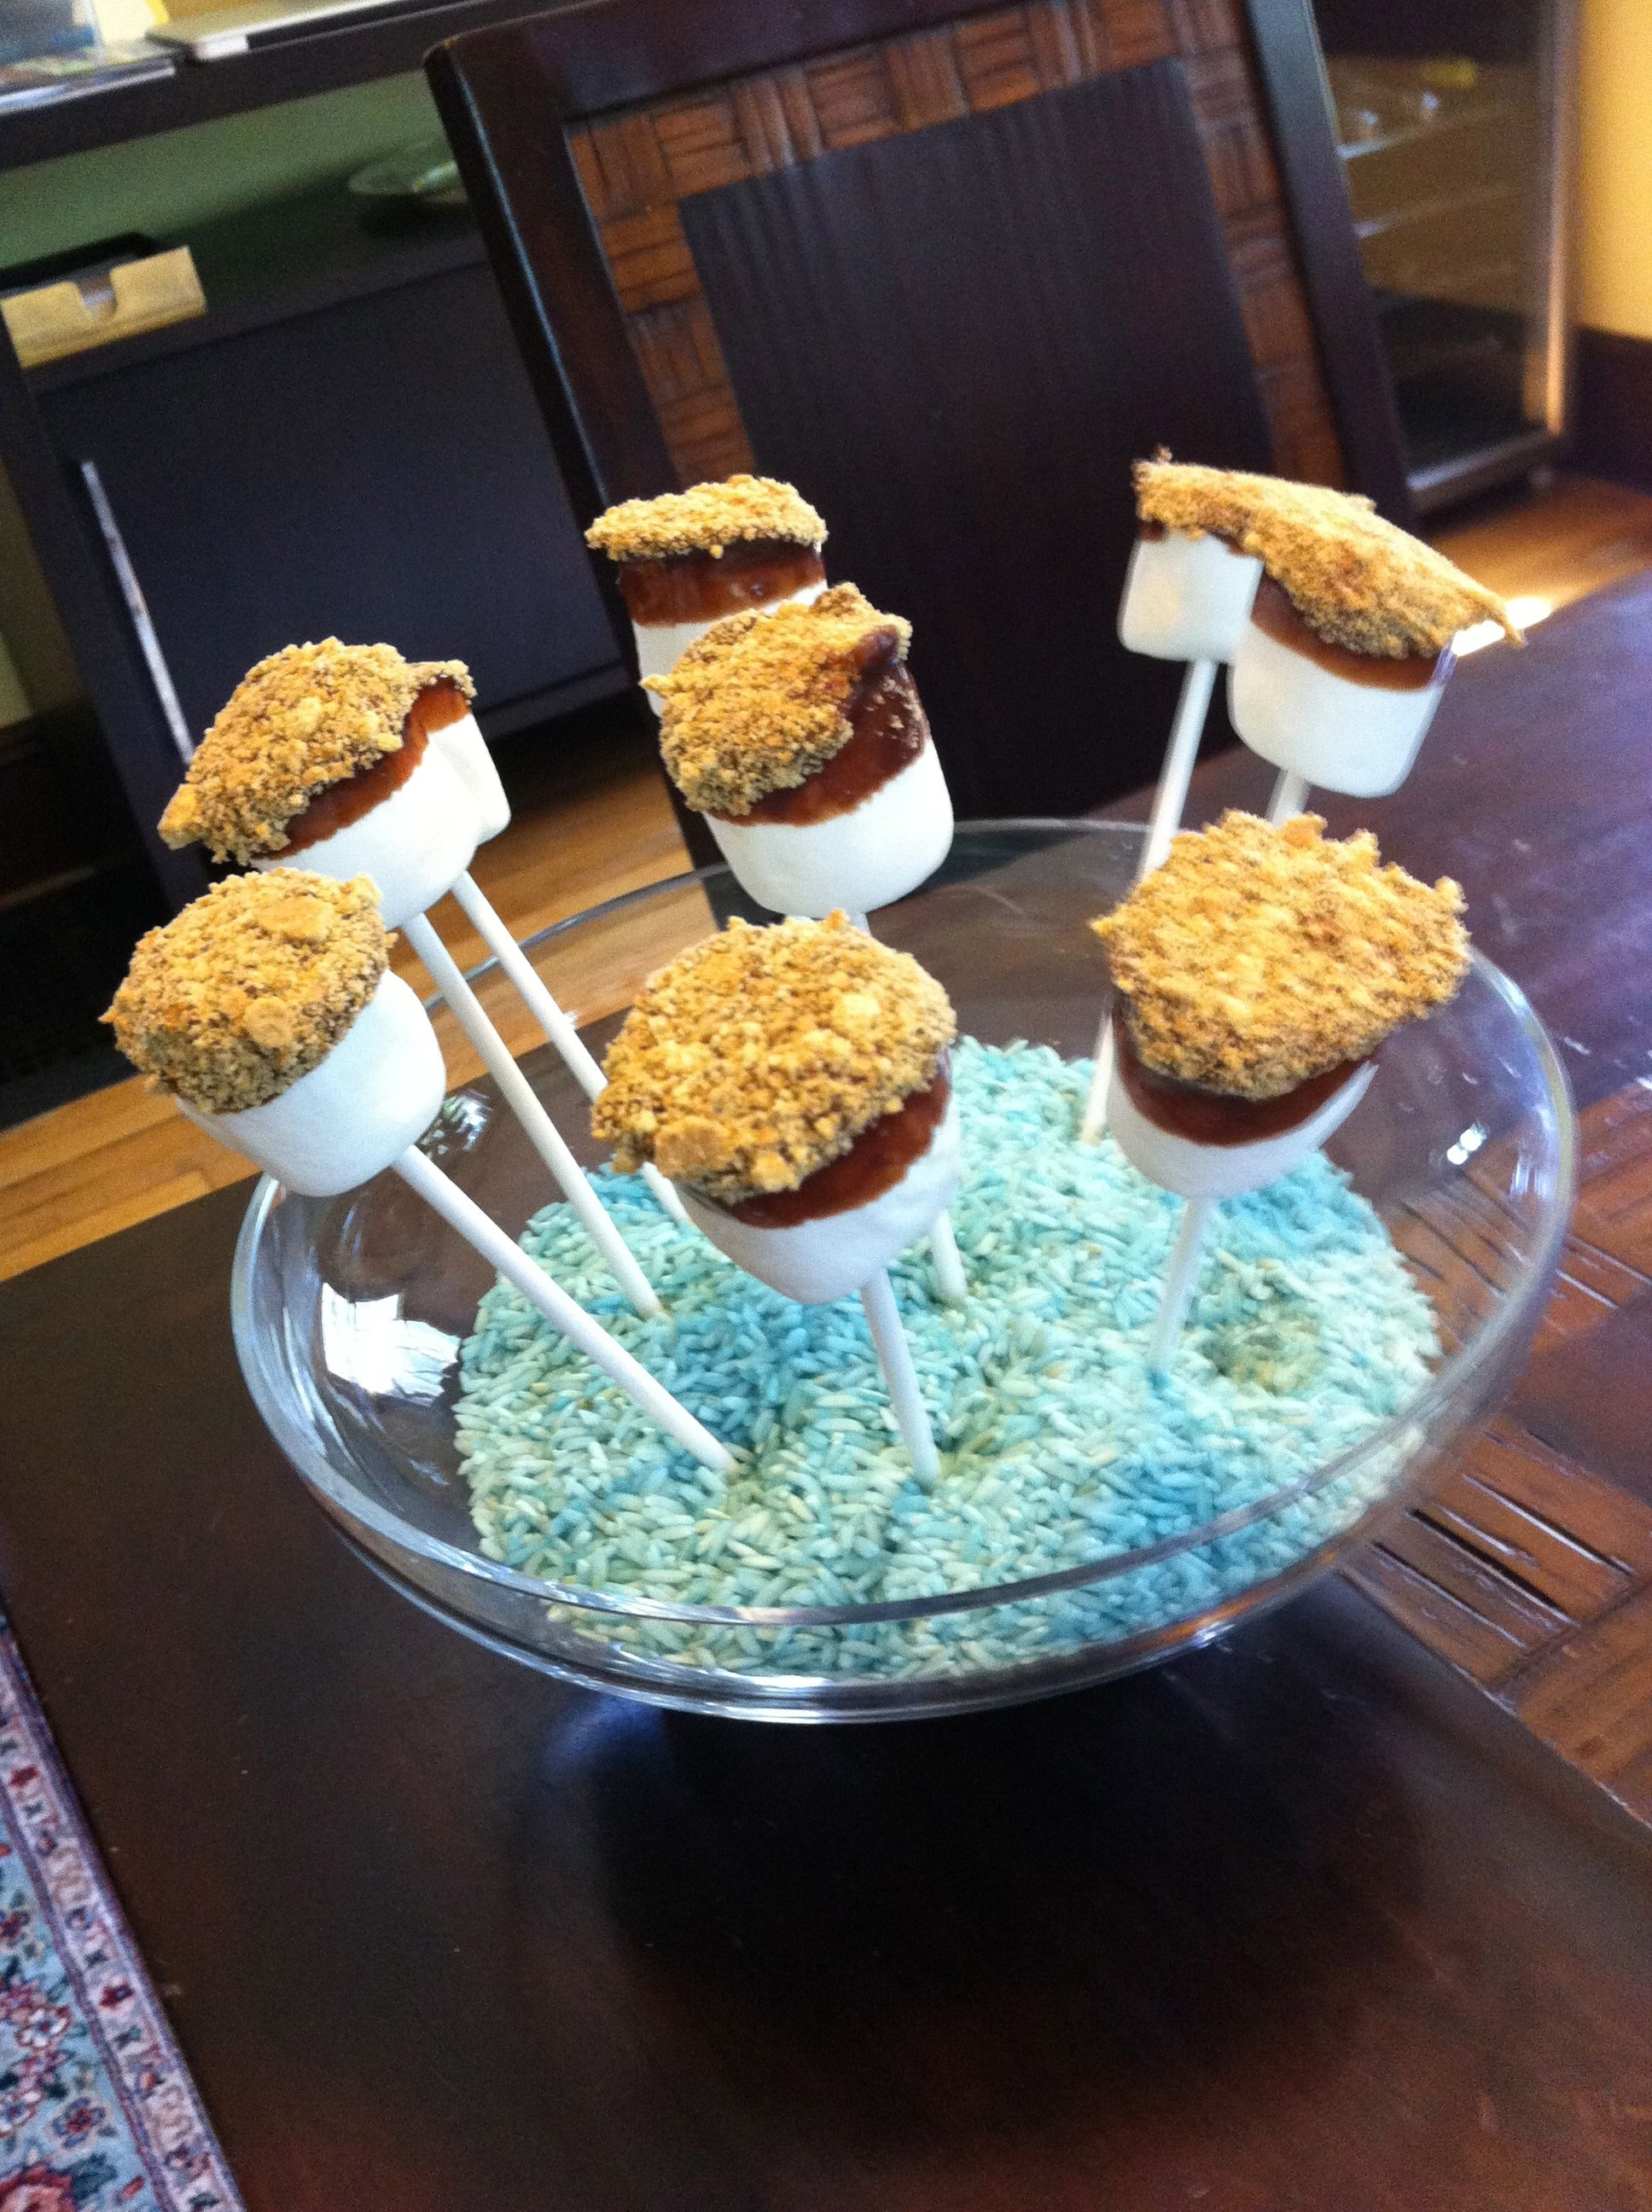 11 Year Girl Bedroom Decoration Ideas: Choc Dipped Marshmallow & Graham Cracker Crumbs.... Smore